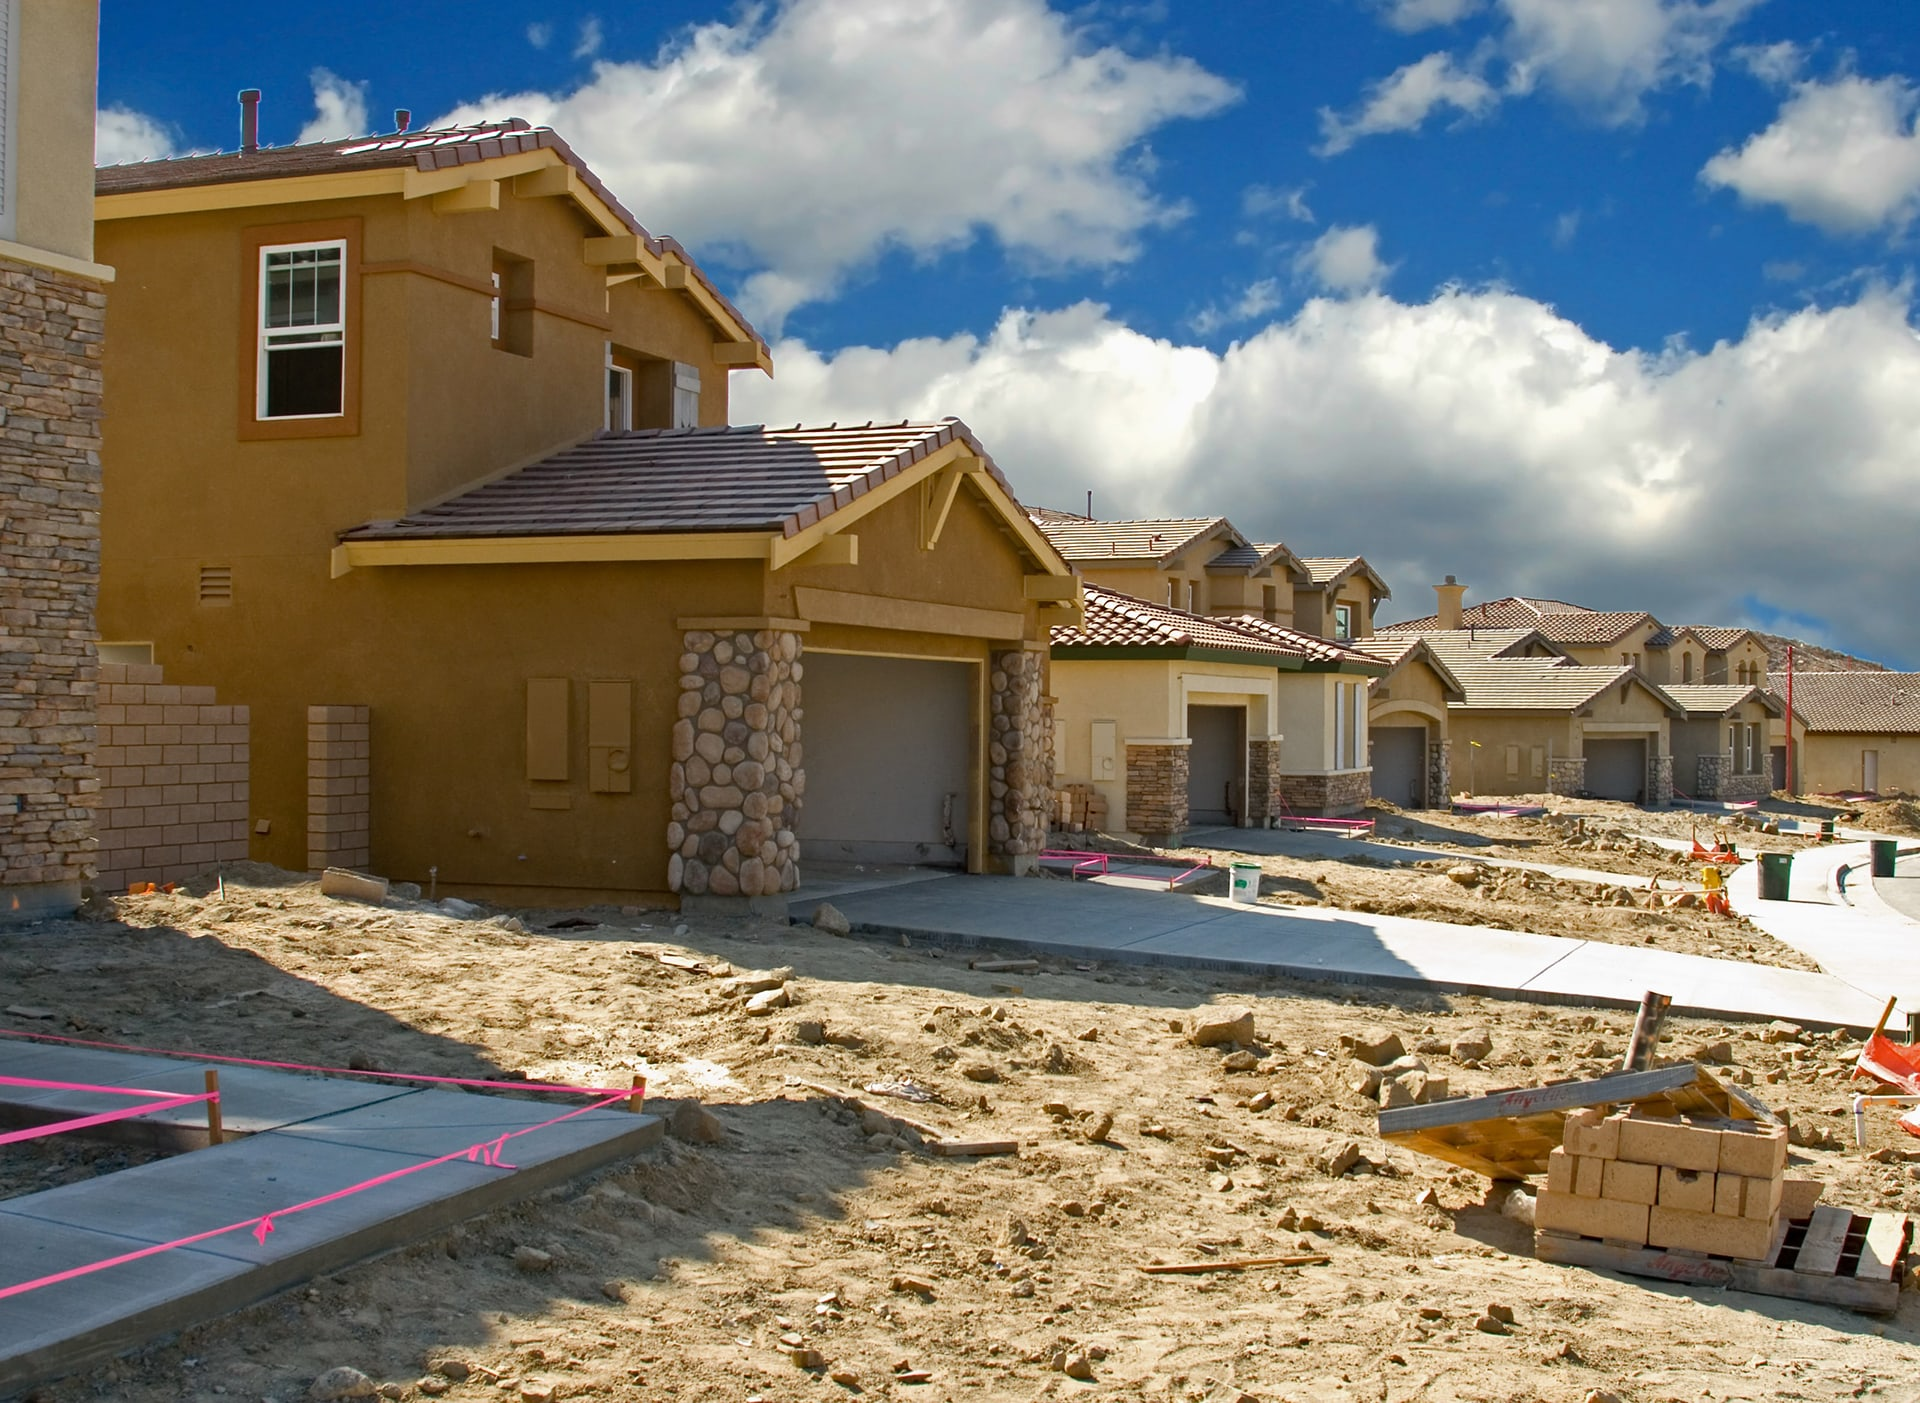 Image of a community constructing a new residential subdivision